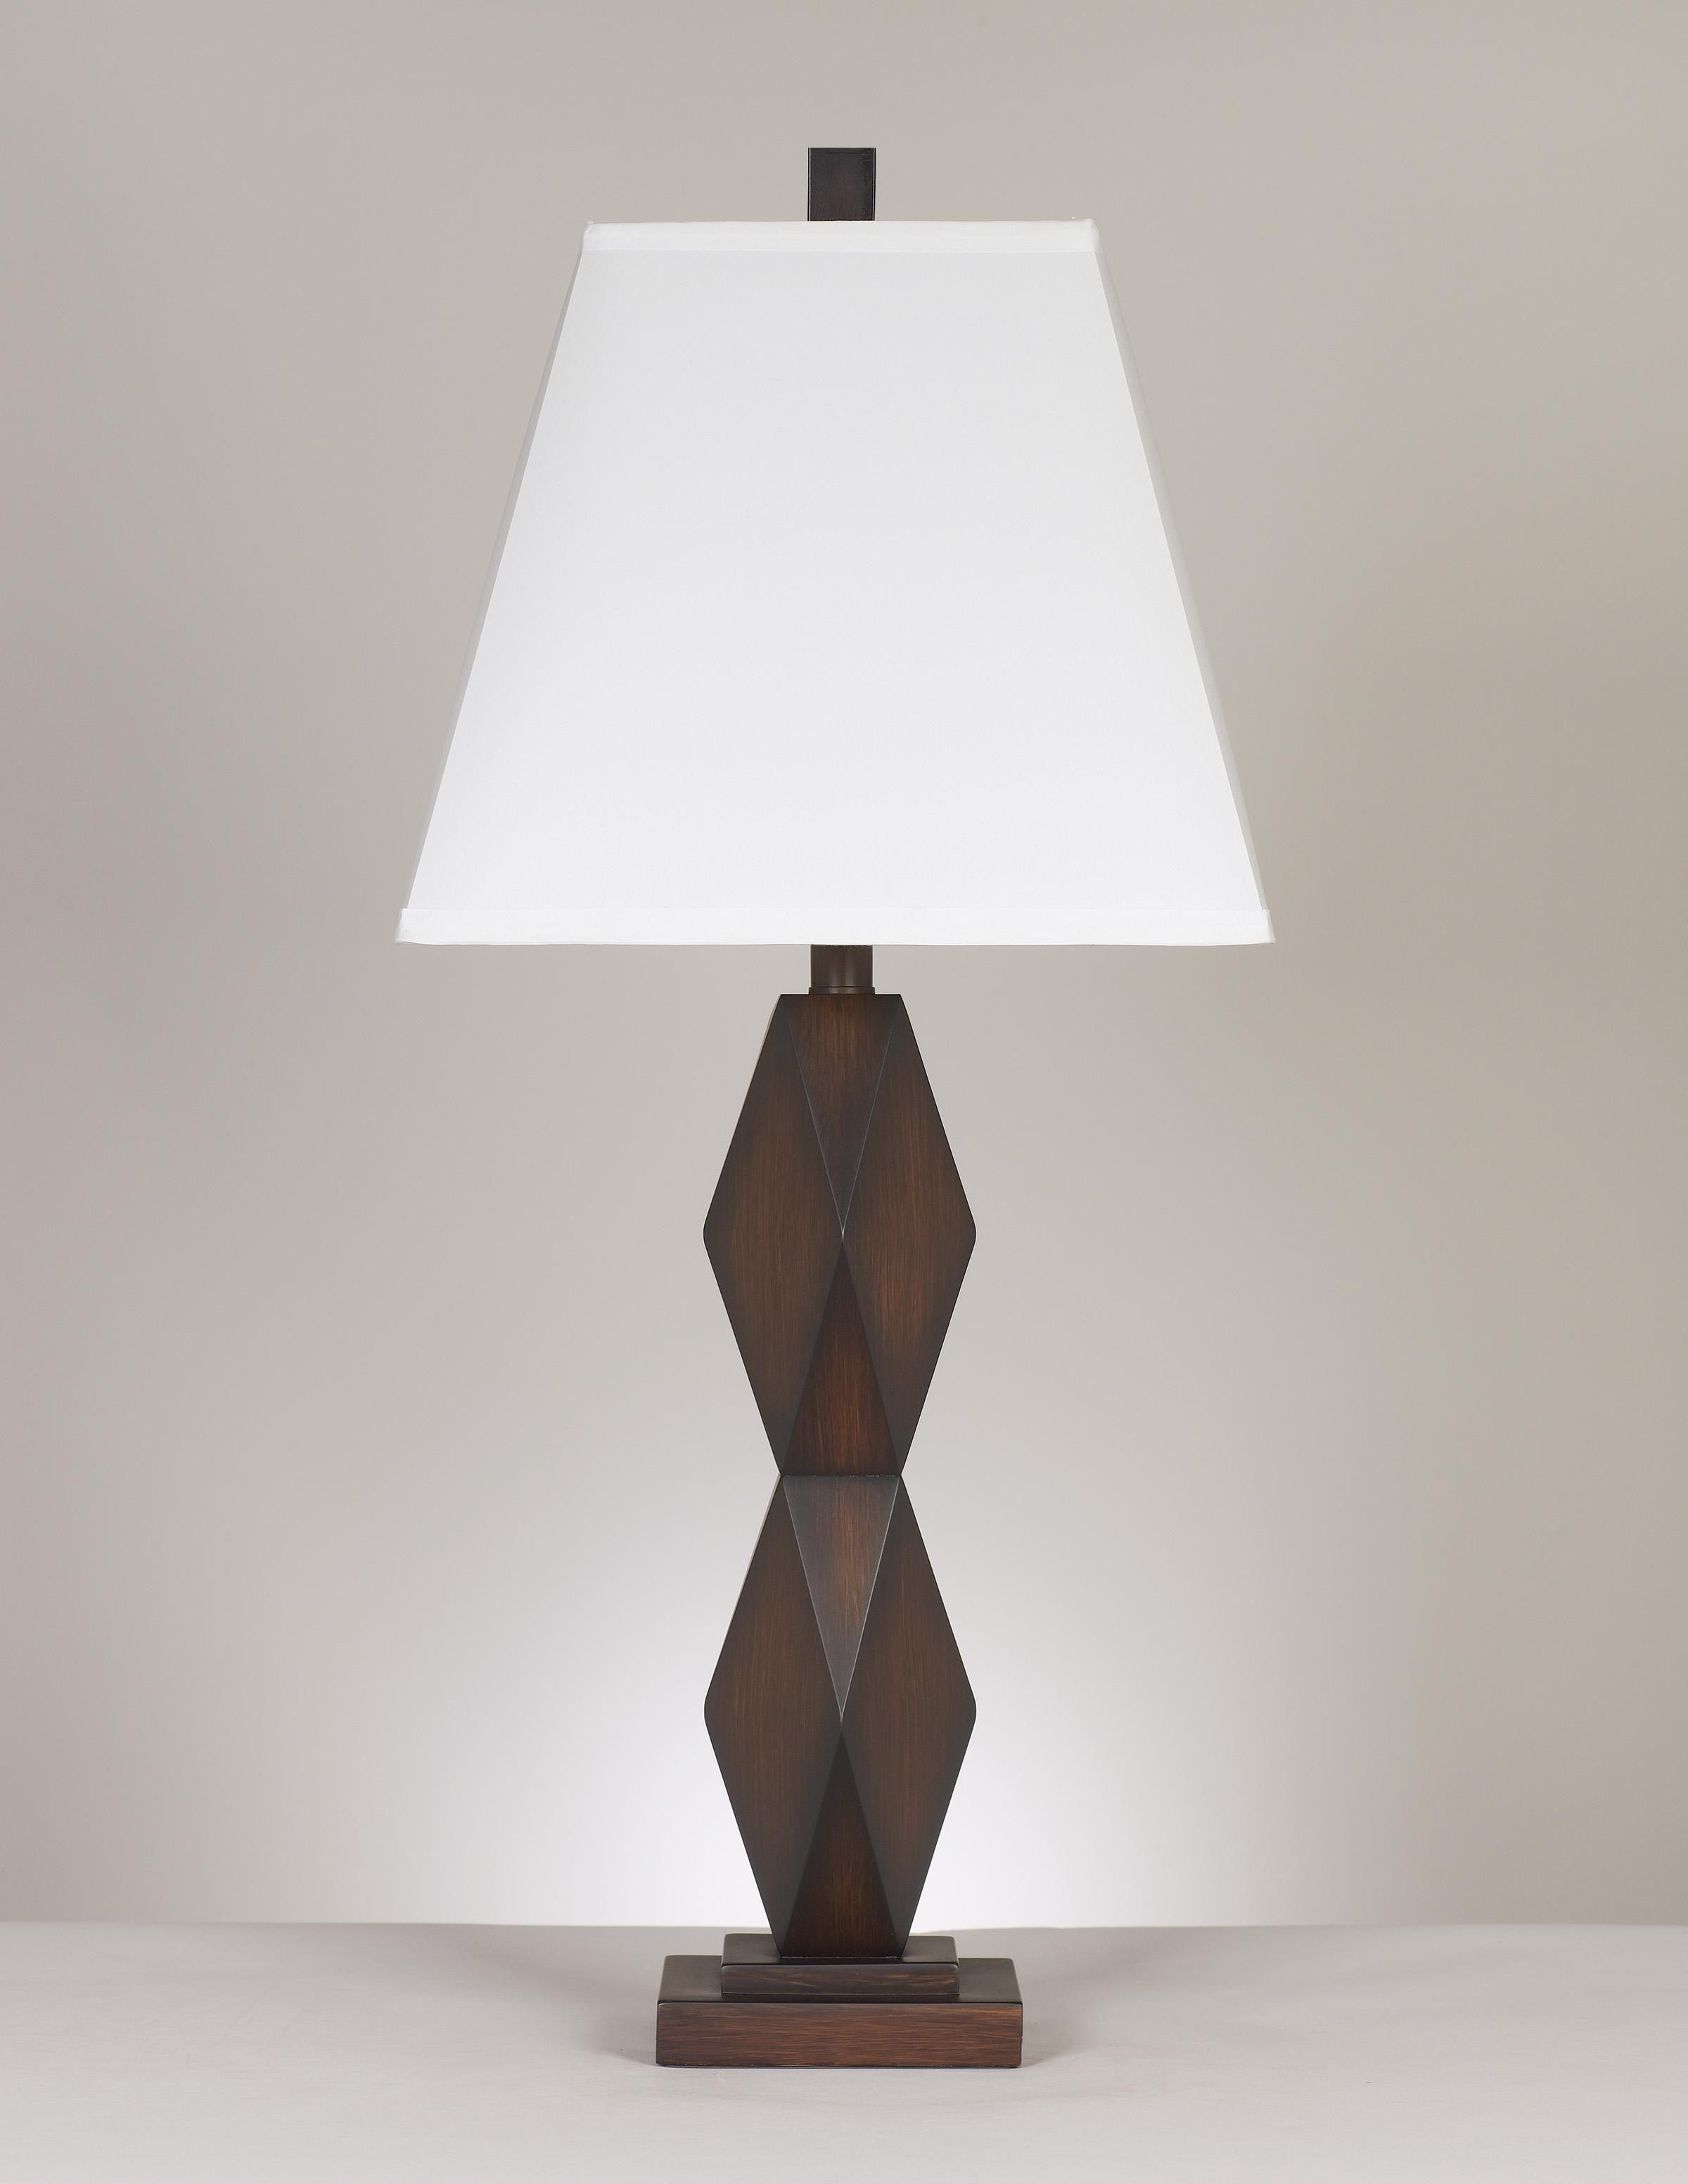 Signature Design by Ashley Lamps - Contemporary Set of 2 Natane Table Lamps - Item Number: L292154